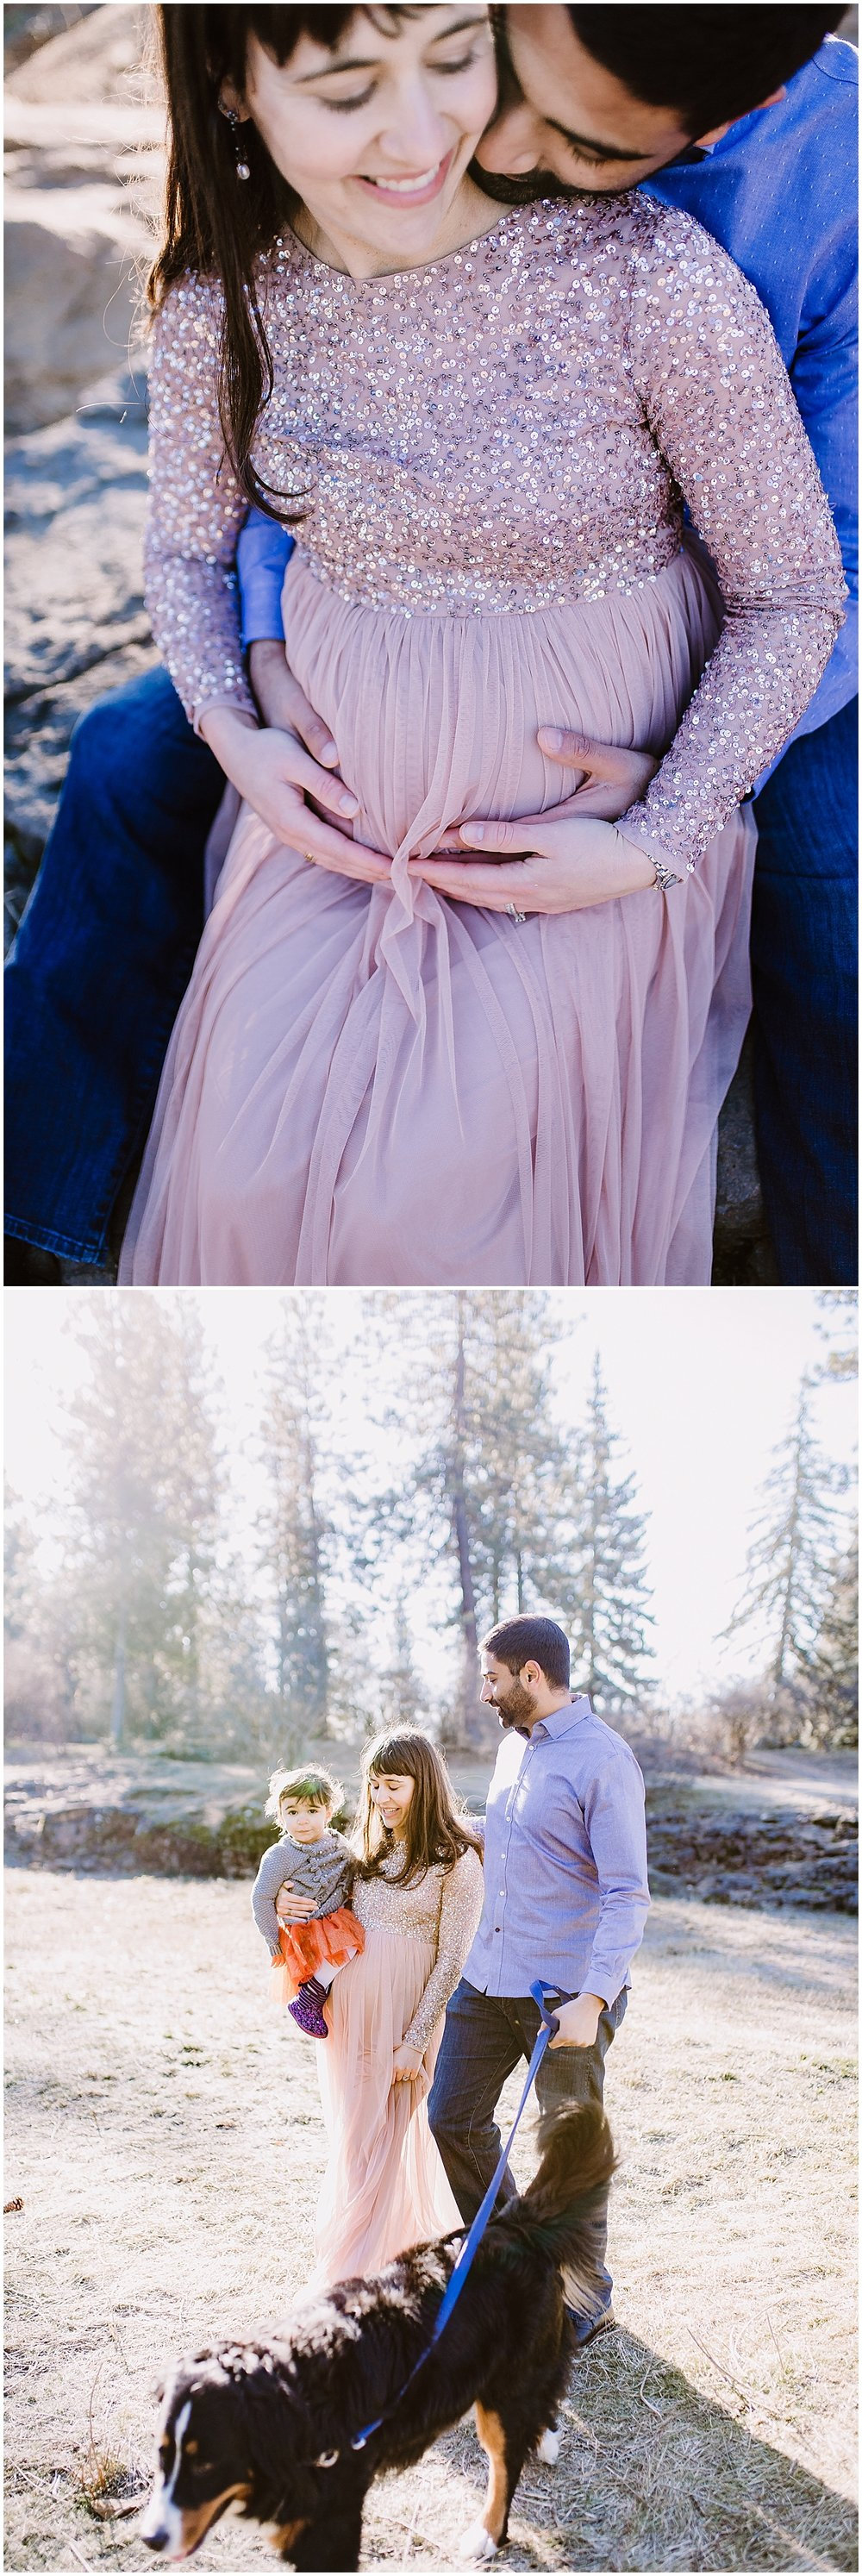 Spokane Maternity Photos.jpg